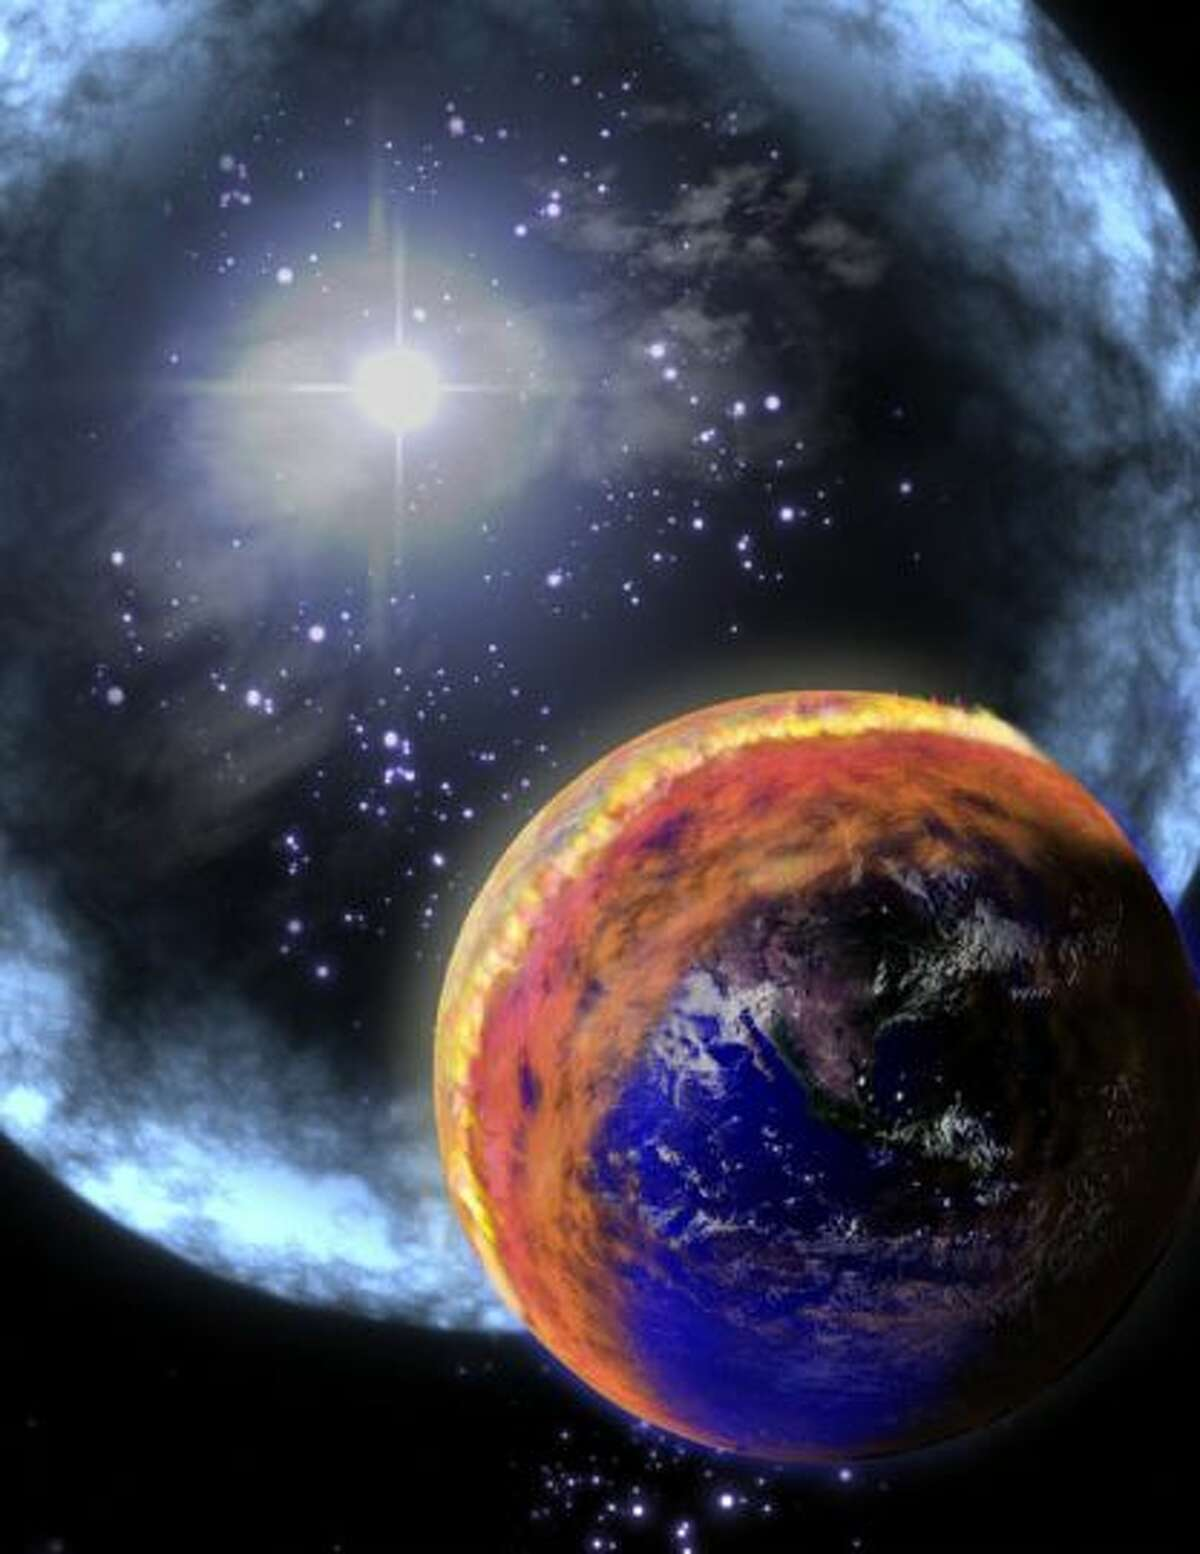 The last time we were panicked on a national and even worldwide scale was in 2012. But, the world did not end (right?) - The rogue planet Nibiru did not hit us; a solar flare did not engulf us ... nothing. The 5,125-year cycle in the Mayan Long Count calendar ended in December 2012 ... and, well, we had some fun with it at the time. Not only did the predictions in 2012 fail, but many others have failed as well. We rounded up some other notable end-of-the-world FAILS. They're presented in more or less chronological order starting with the most recent. Also, a H/T to Wikipedia. (Photo: NASA)